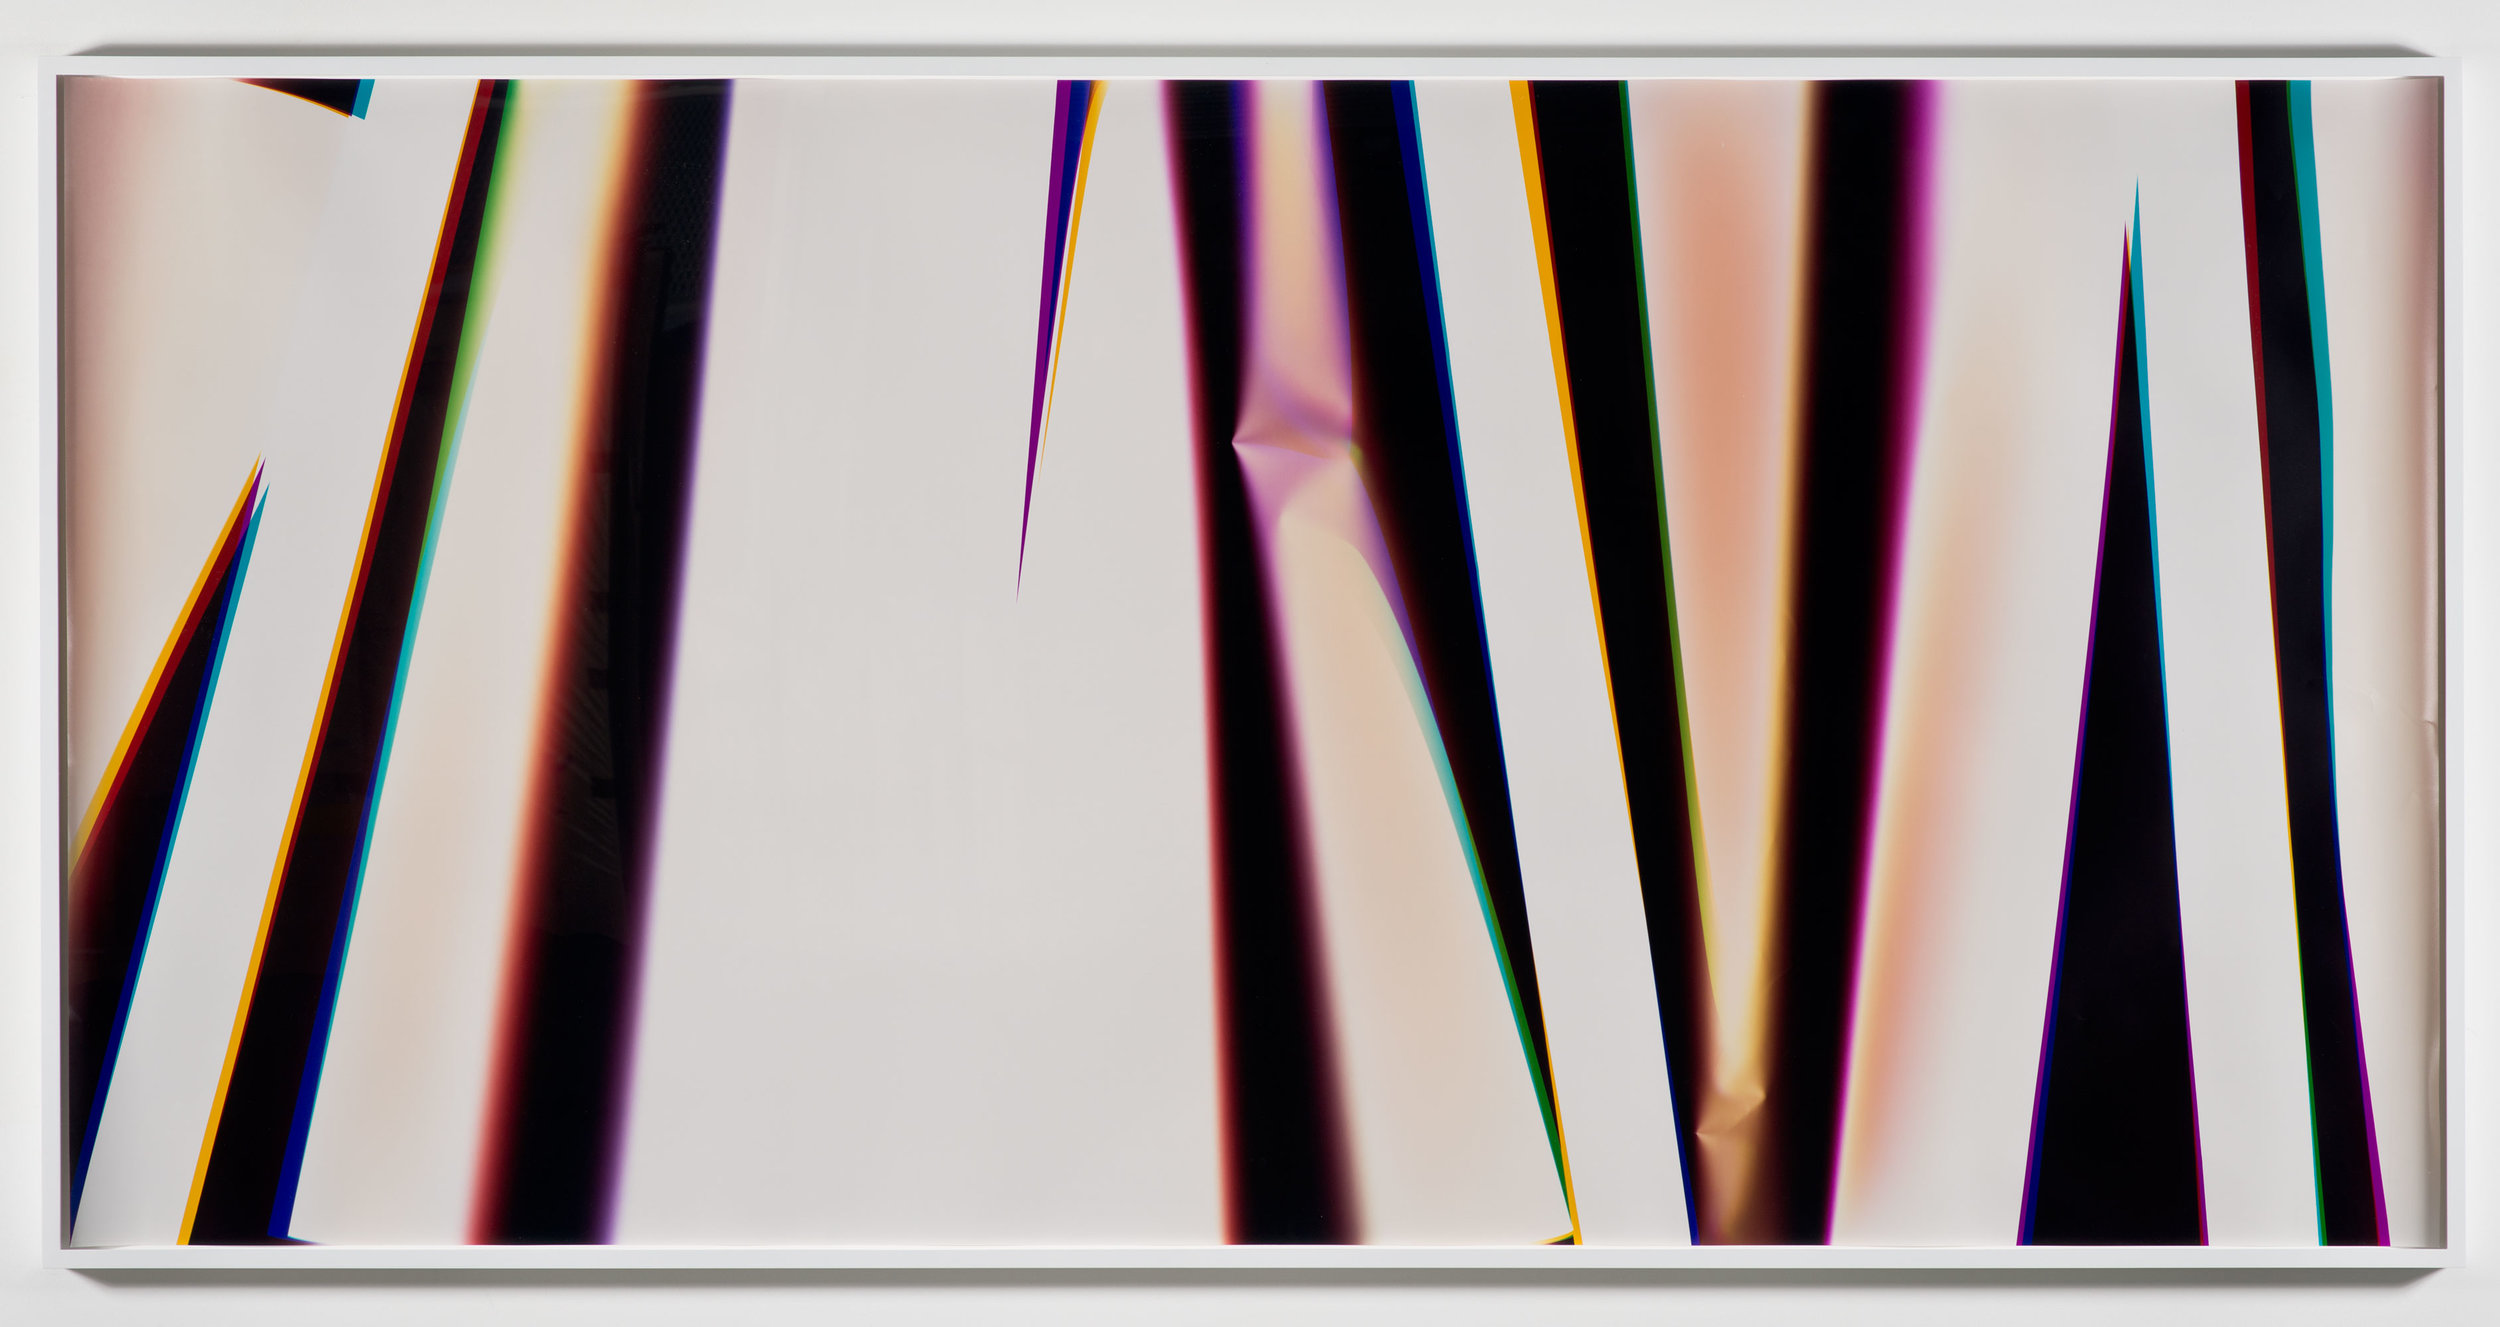 White Curl (YMC/Four Magnet: Los Angeles, California, February 28, 2013, Fuji Color Crystal Archive Super Type C, Em. No. 166-016, 05513)    2013   Color photographic paper  50 x 103 1/2 inches